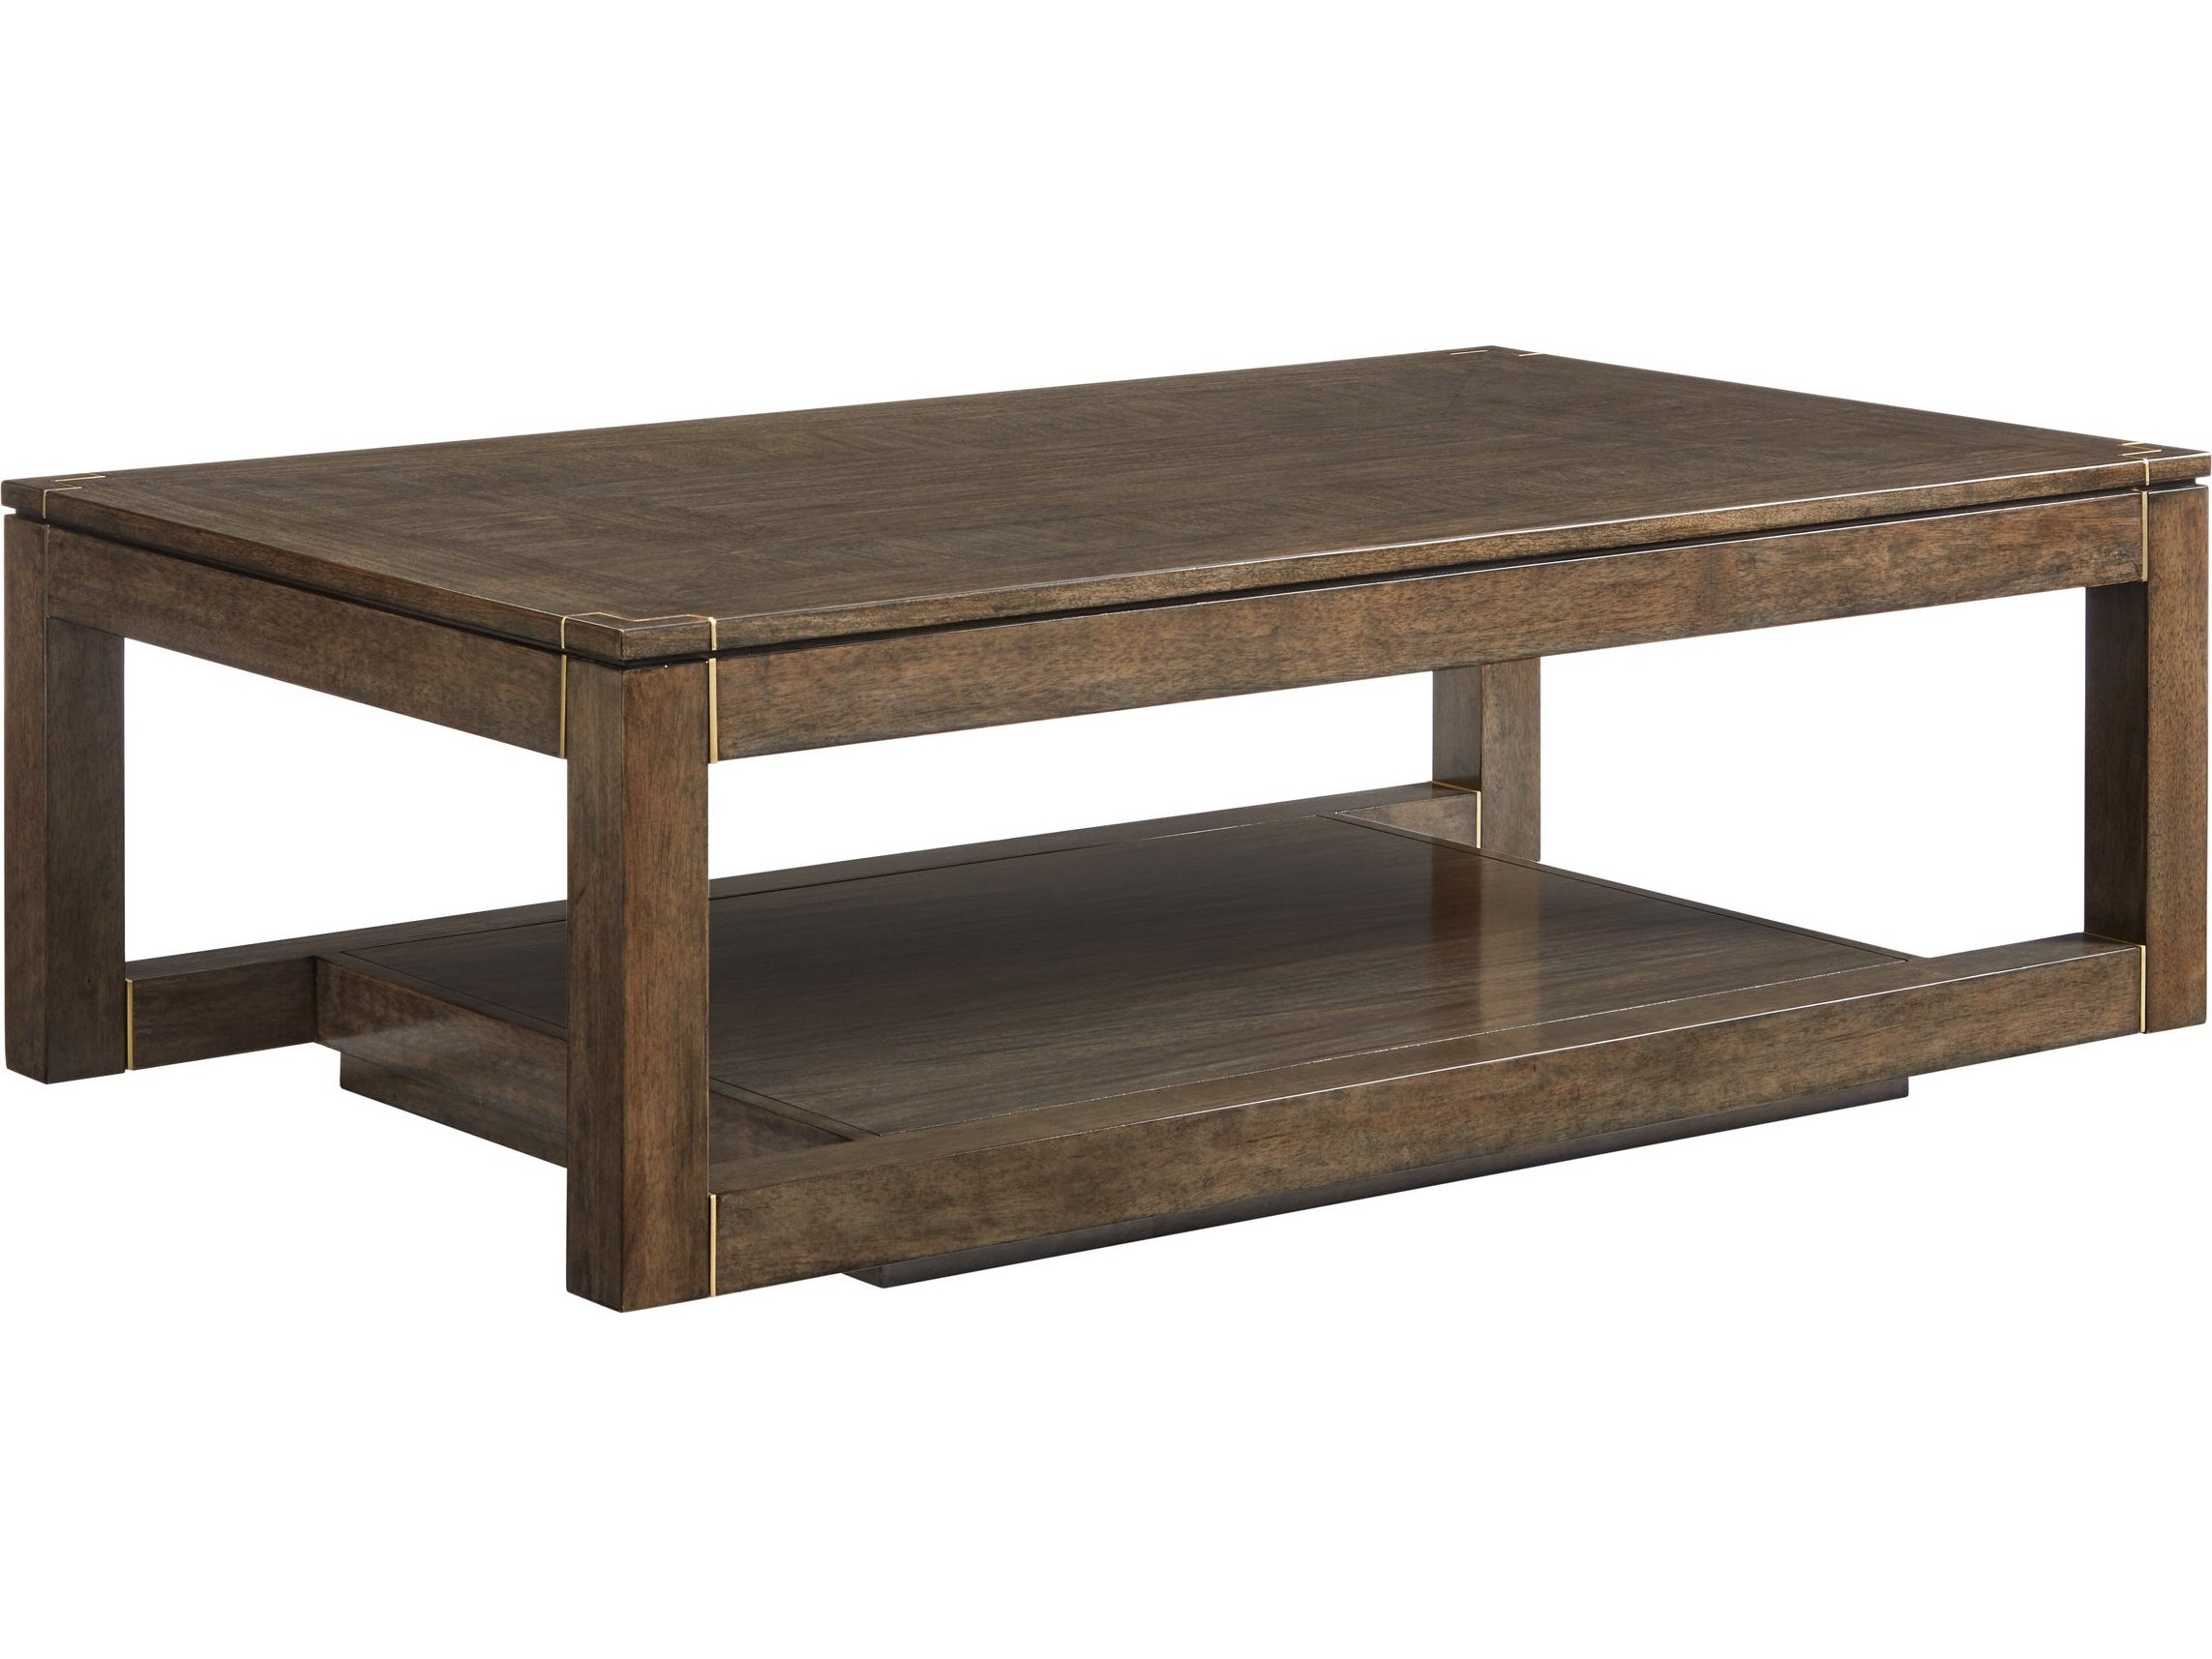 Stanley Furniture Coffee Table Hipenmoedernl within dimensions 2286 X 1715